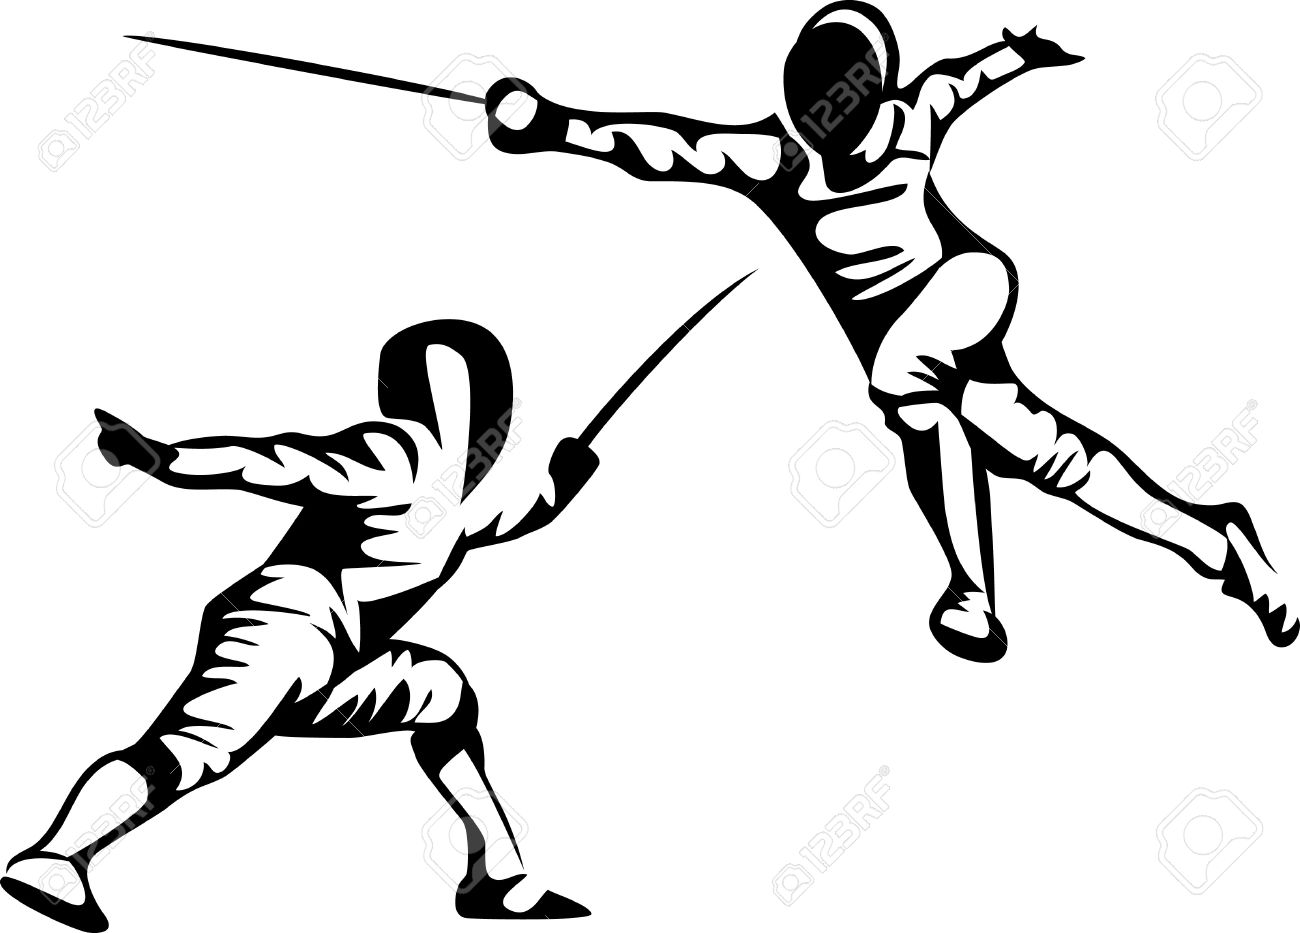 Fencing Sport Royalty Free Cliparts, Vectors, And Stock.